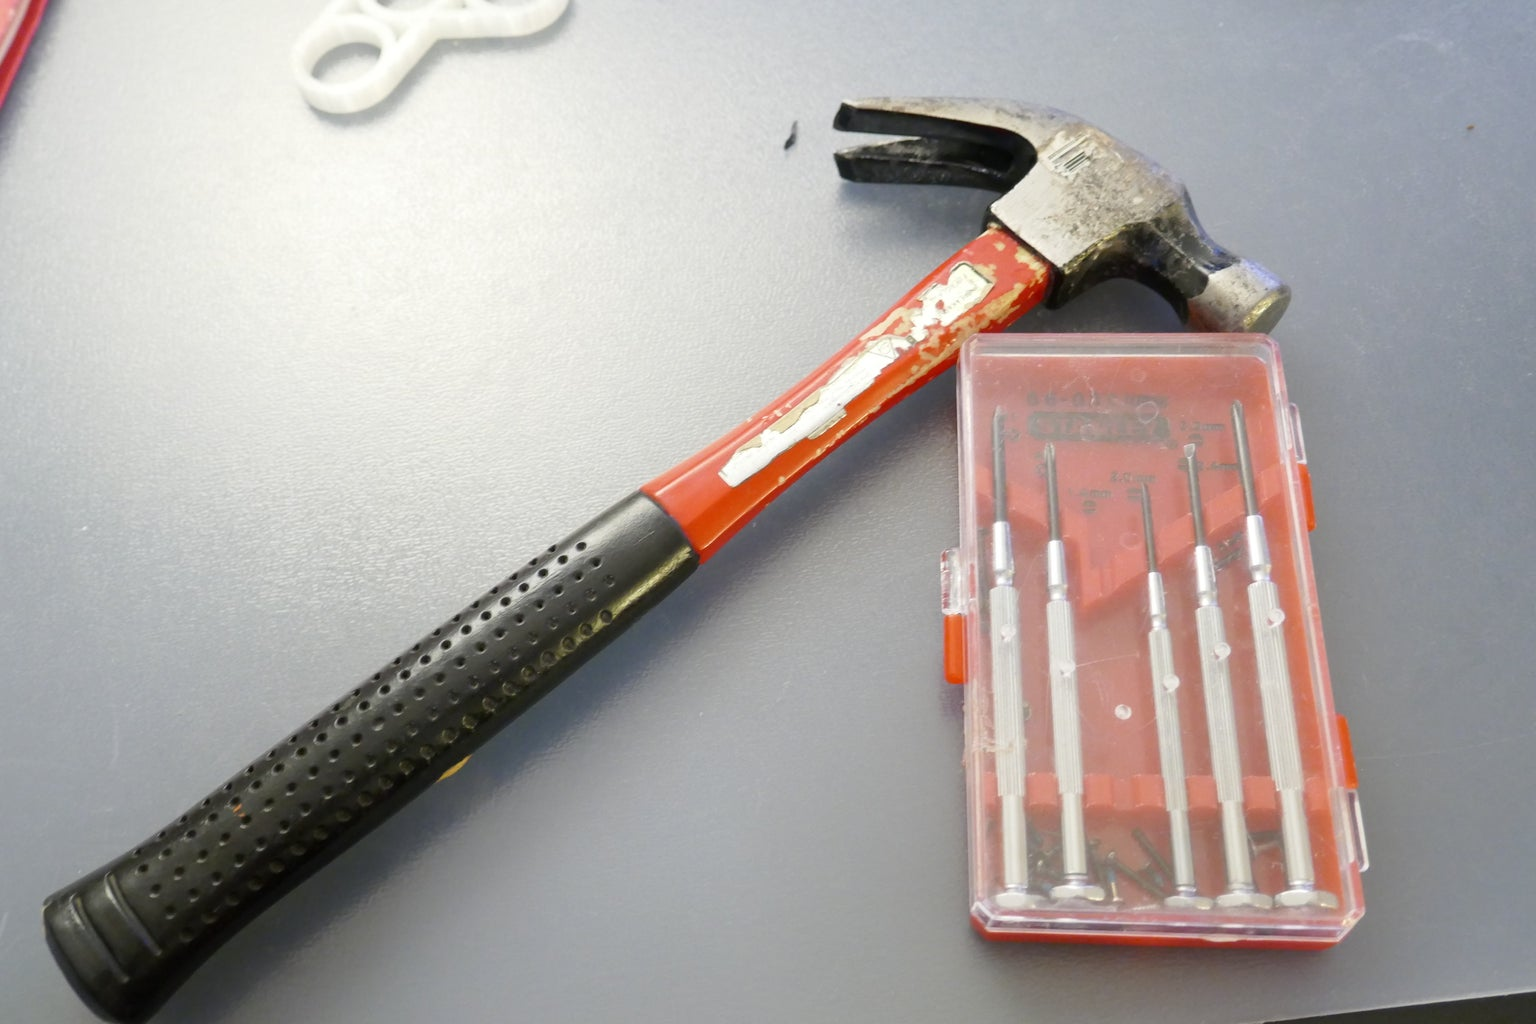 Project Materials and Tools